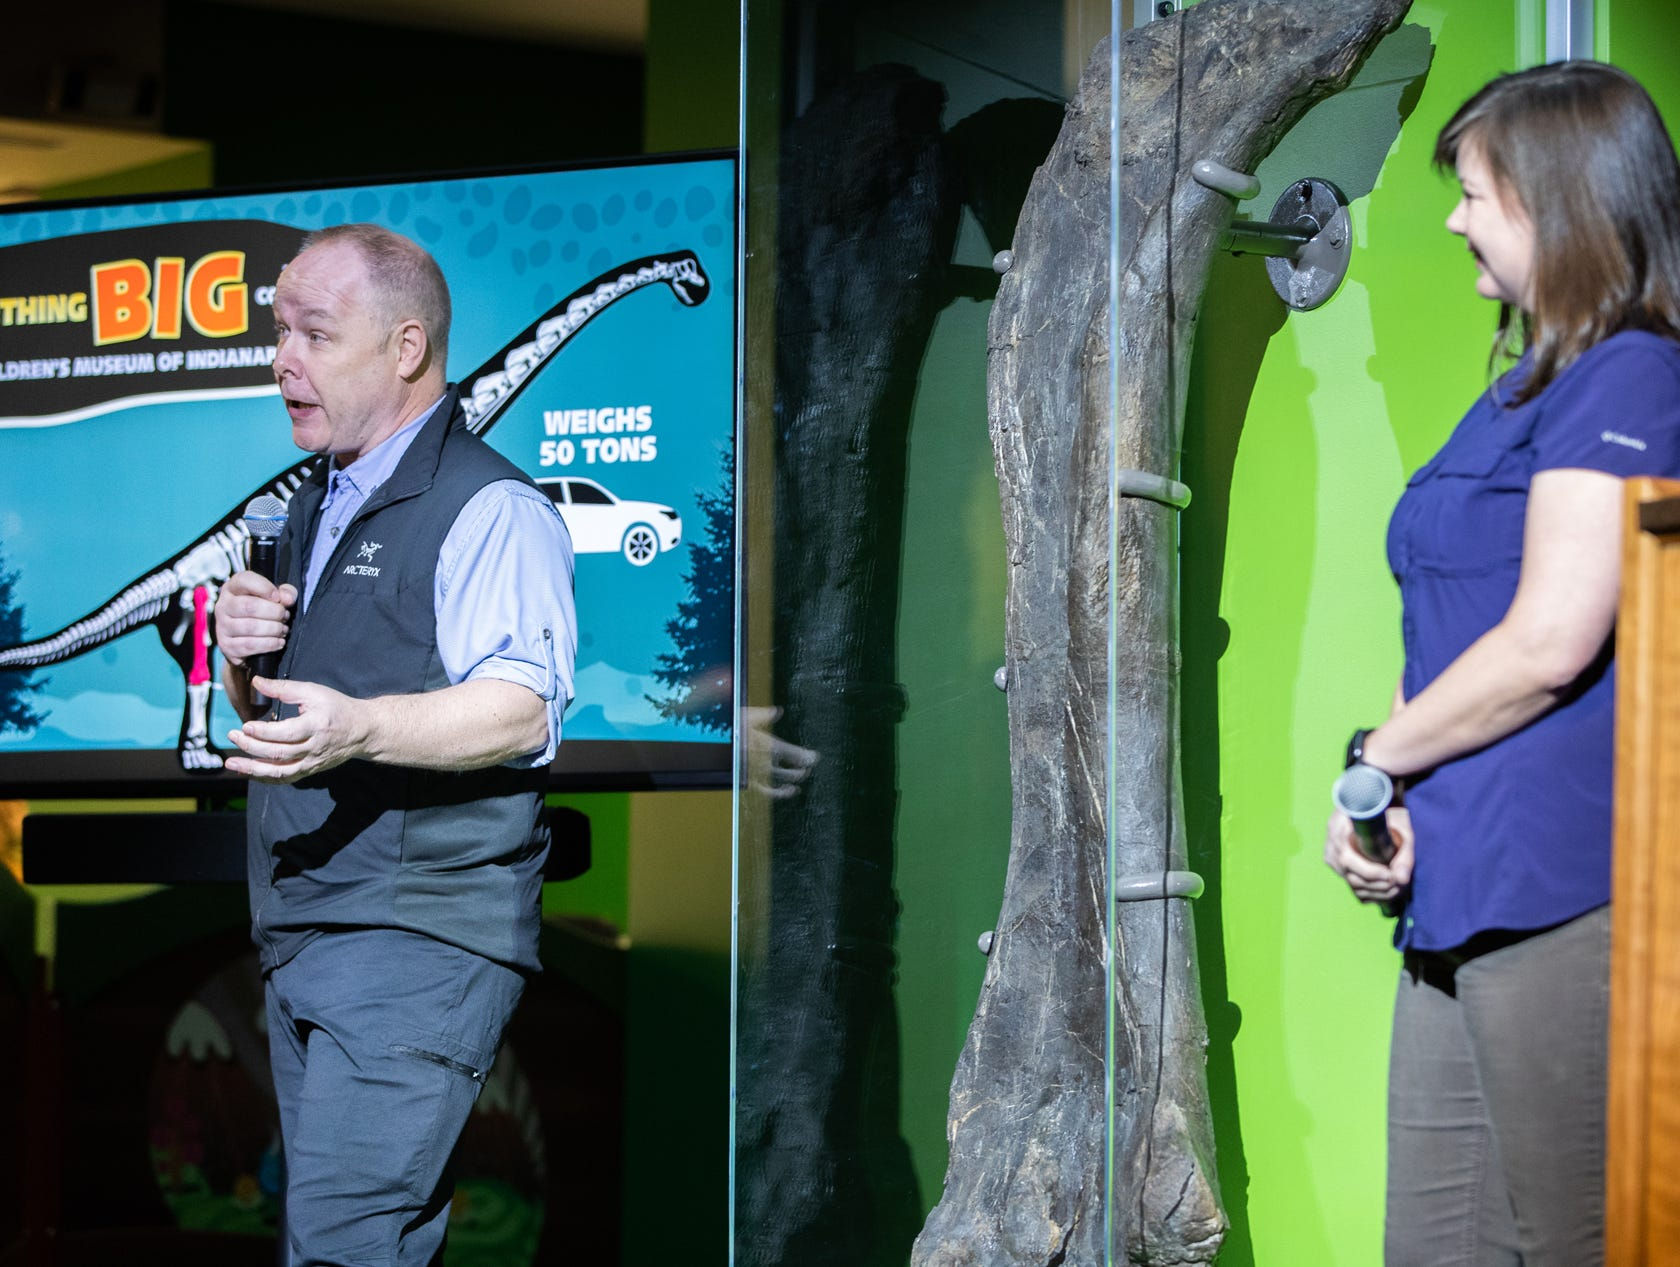 The two Children's Museum of Indianapolis' Extraordinary Scientists-in-Residence leading Mission Jurassic, Professor Phil Manning (left) and Dr. Victoria Egerton, of the University of Manchester, talk about the femur of a newly discovered  Brachiosaur at the Children's Museum of Indianapolis on Monday, March 25, 2019. The project is made possible through a lead gift from Lilly Endowment Inc.